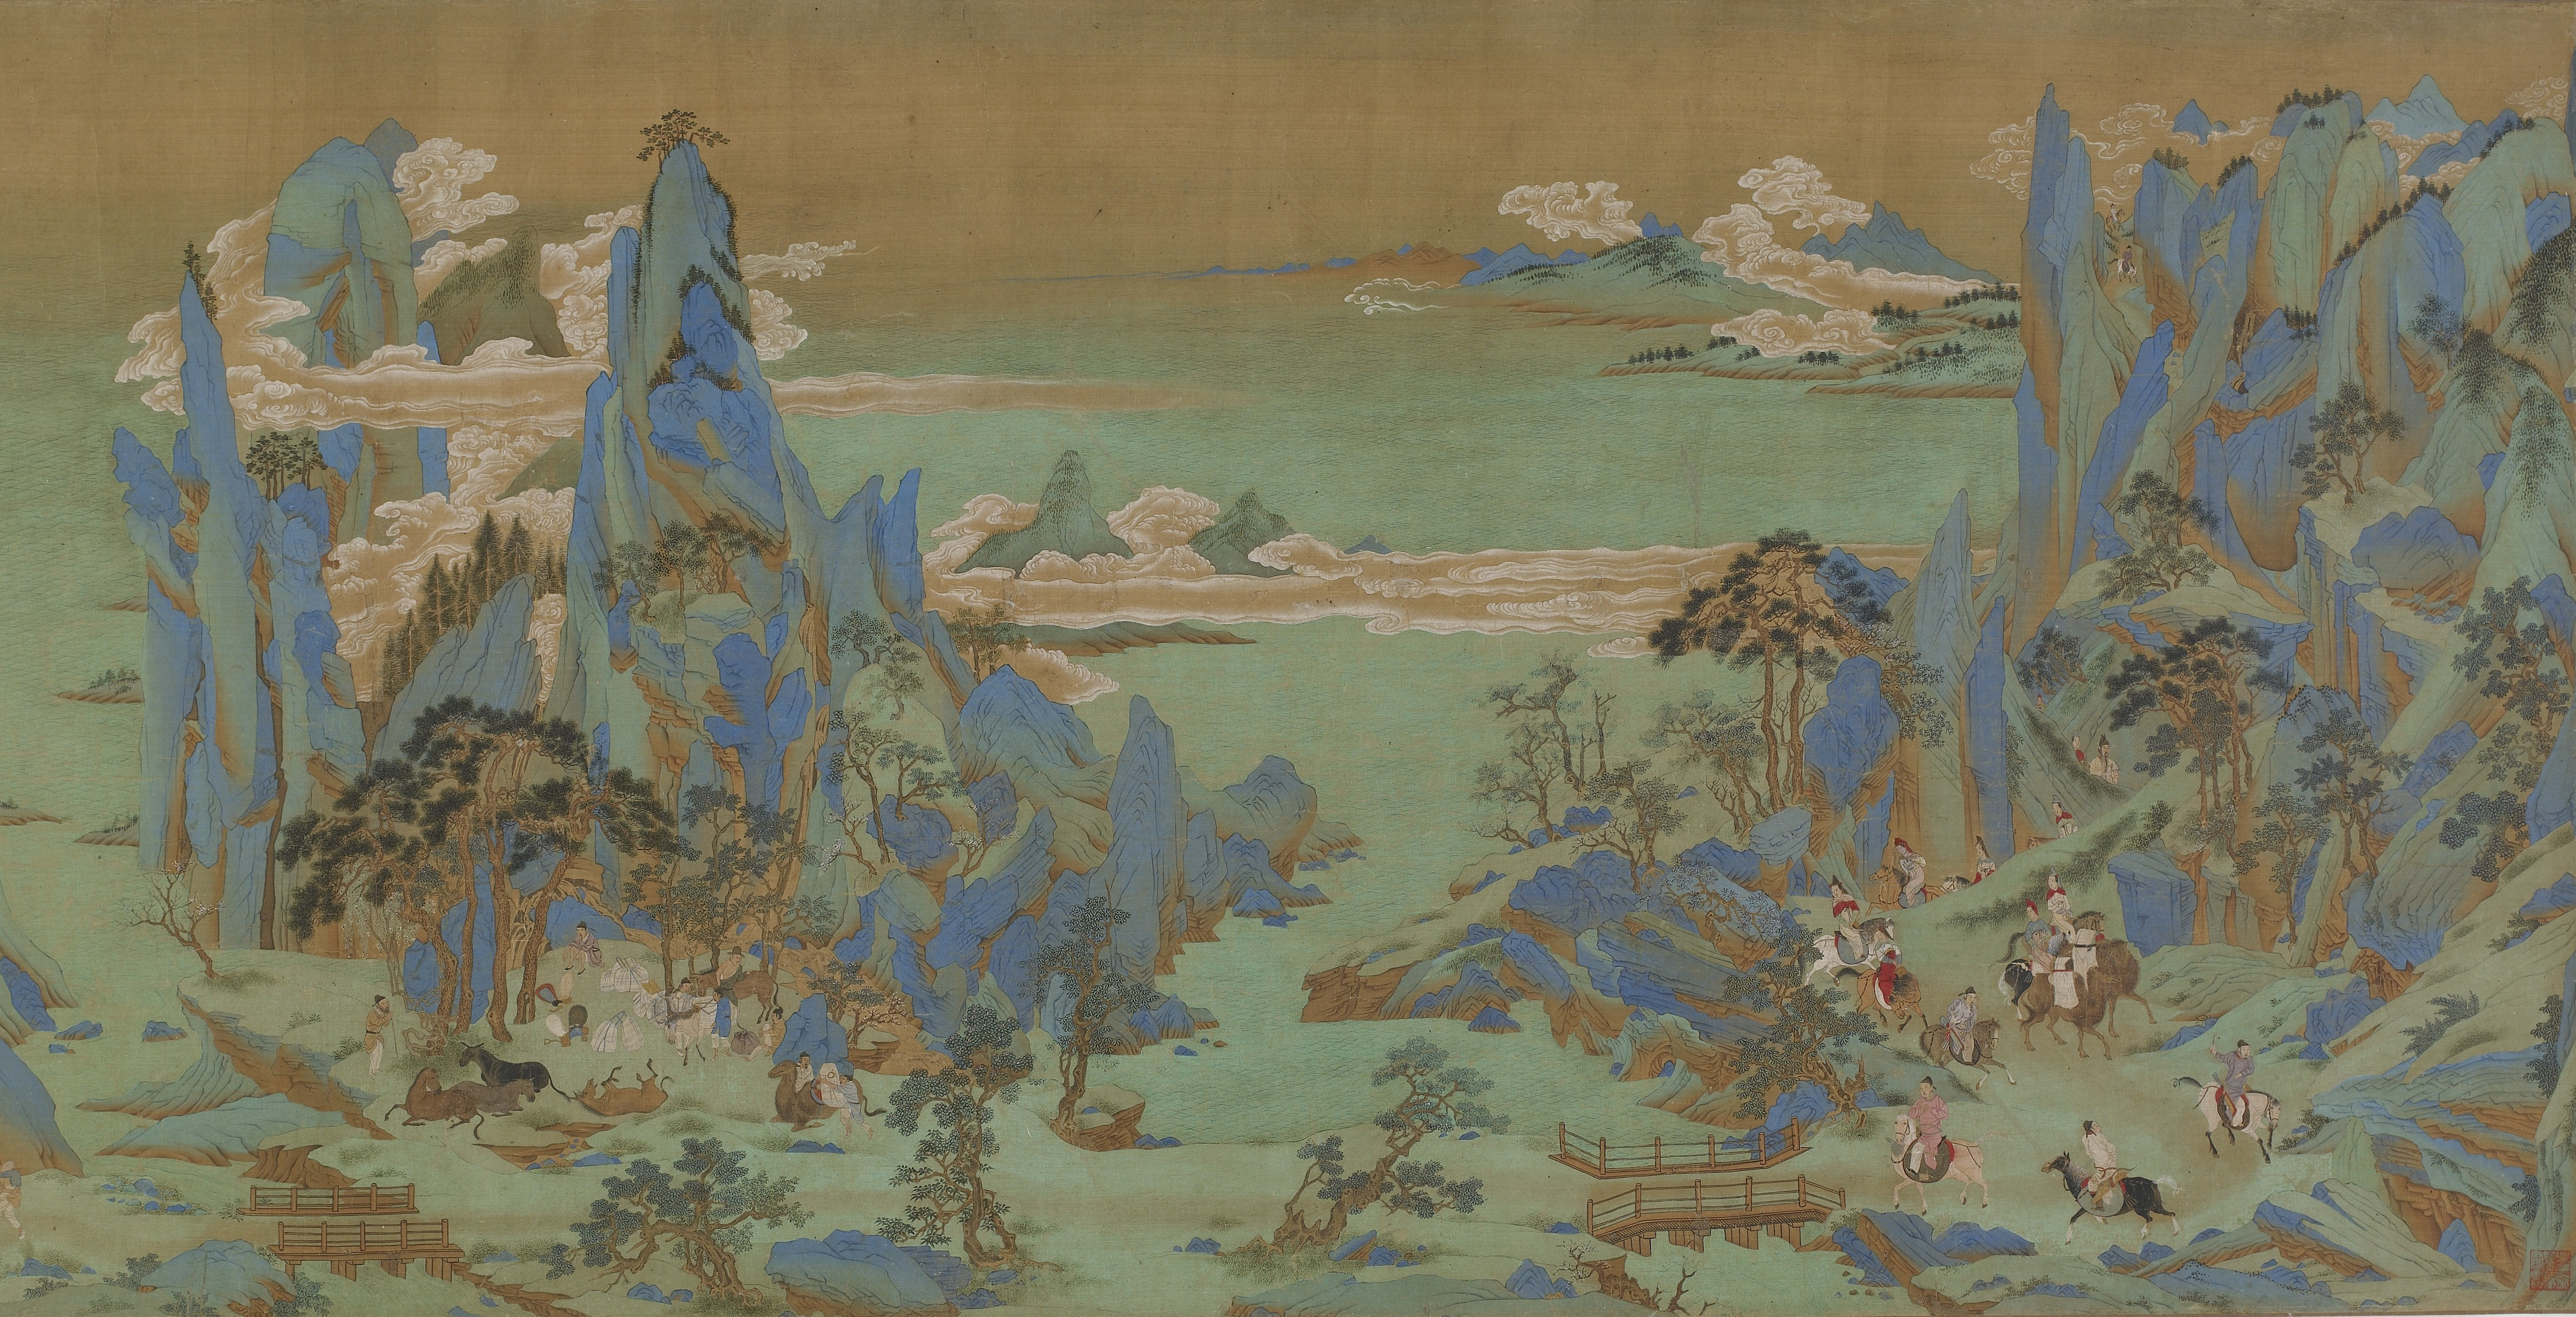 How were the social classes organized during the ming dynasty?